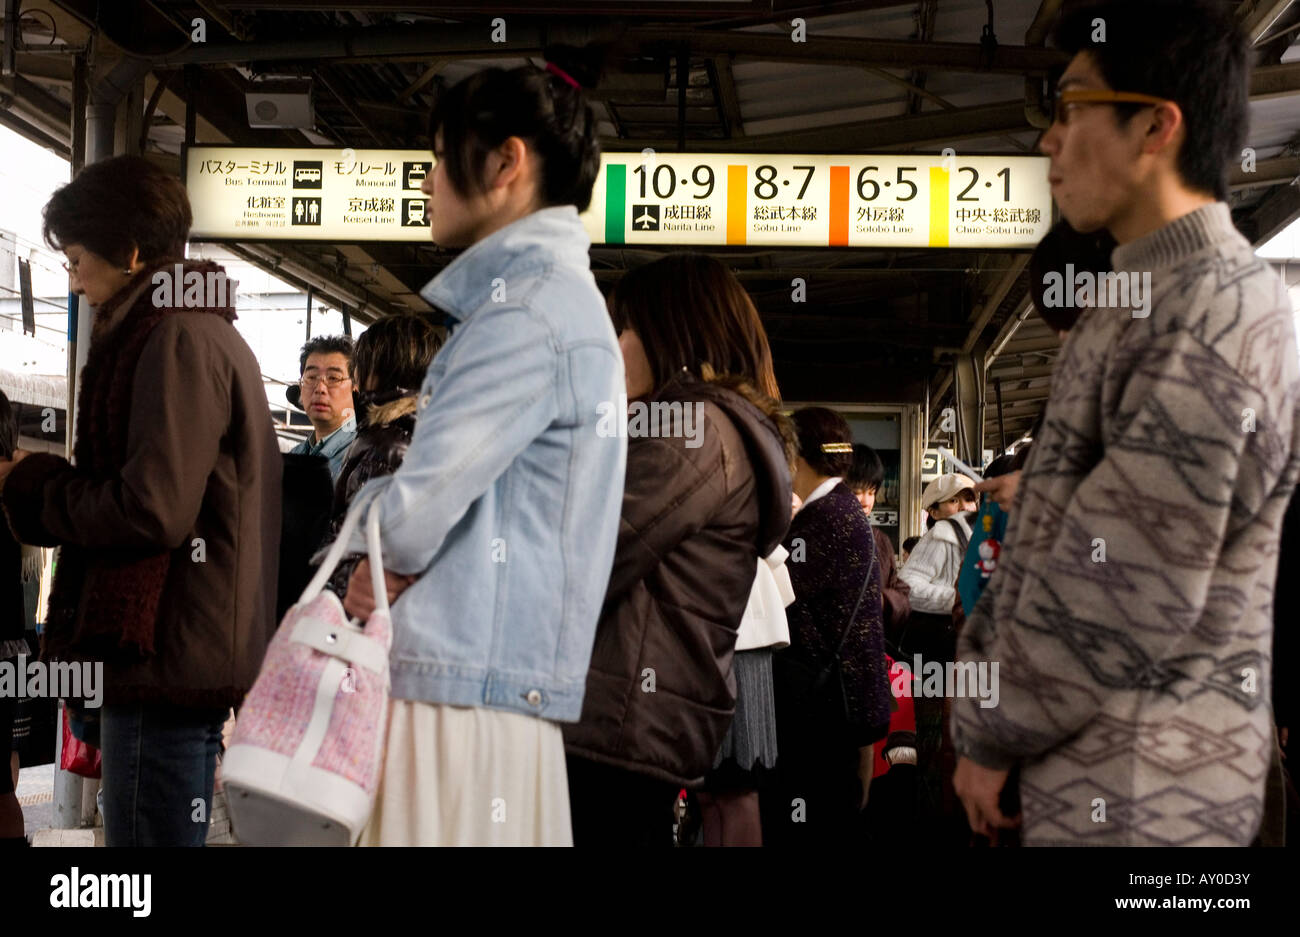 Commuters at railway station, Tokyo, Japan - Stock Image